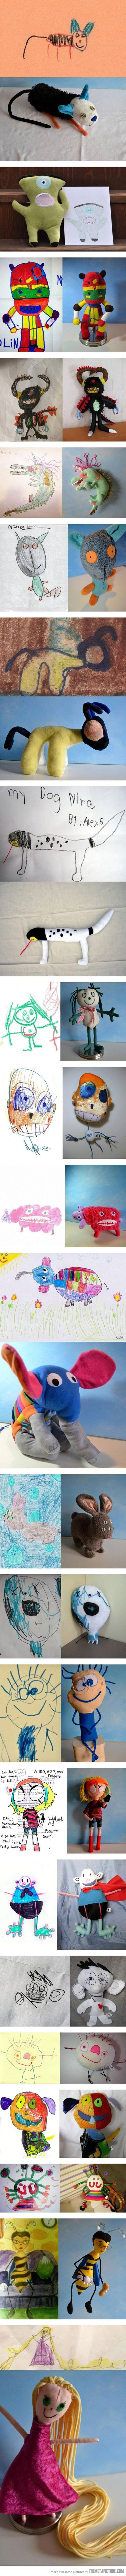 Children's Drawings made into toys. AMAZING!!